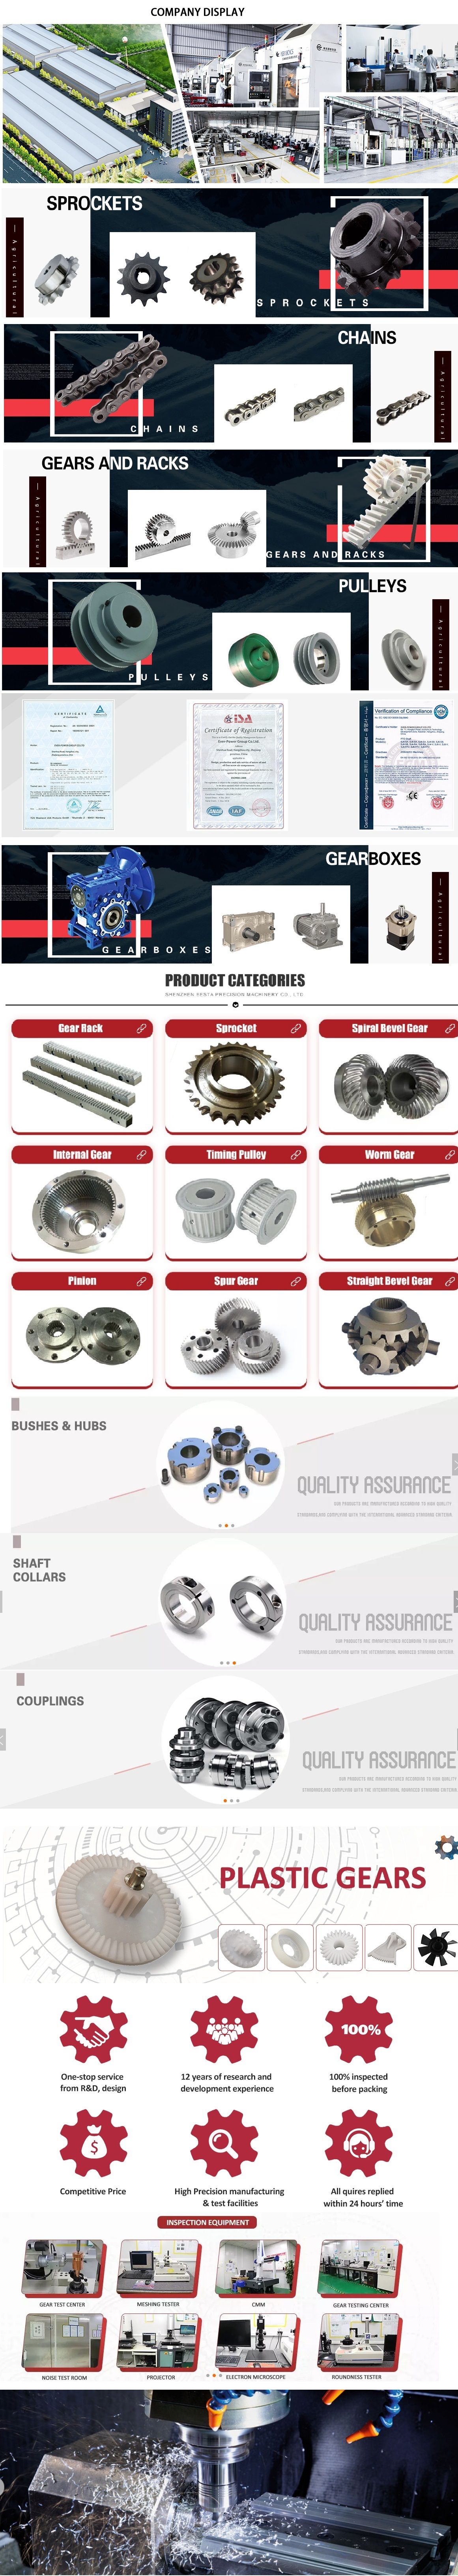 in Sakarya Turkey  sales   price   shop   near me   near me shop   factory   supplier S Series Helical Worm Transmission Gear Box manufacturer   best   Cost   Custom   Cheap   wholesaler